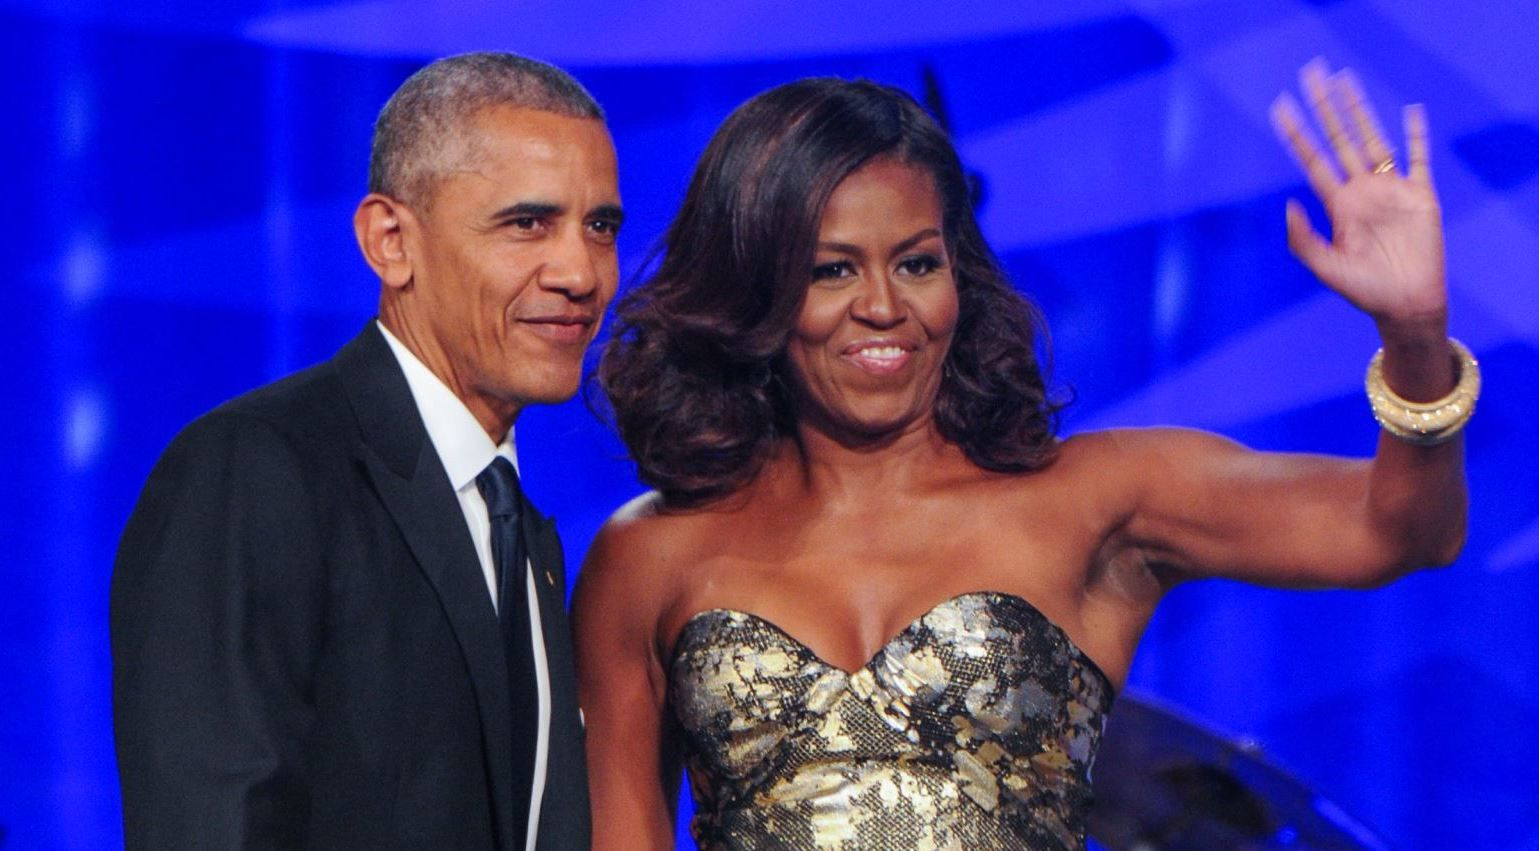 Obama and Michelle Will Attend Biden Inauguration on Jan. 20th